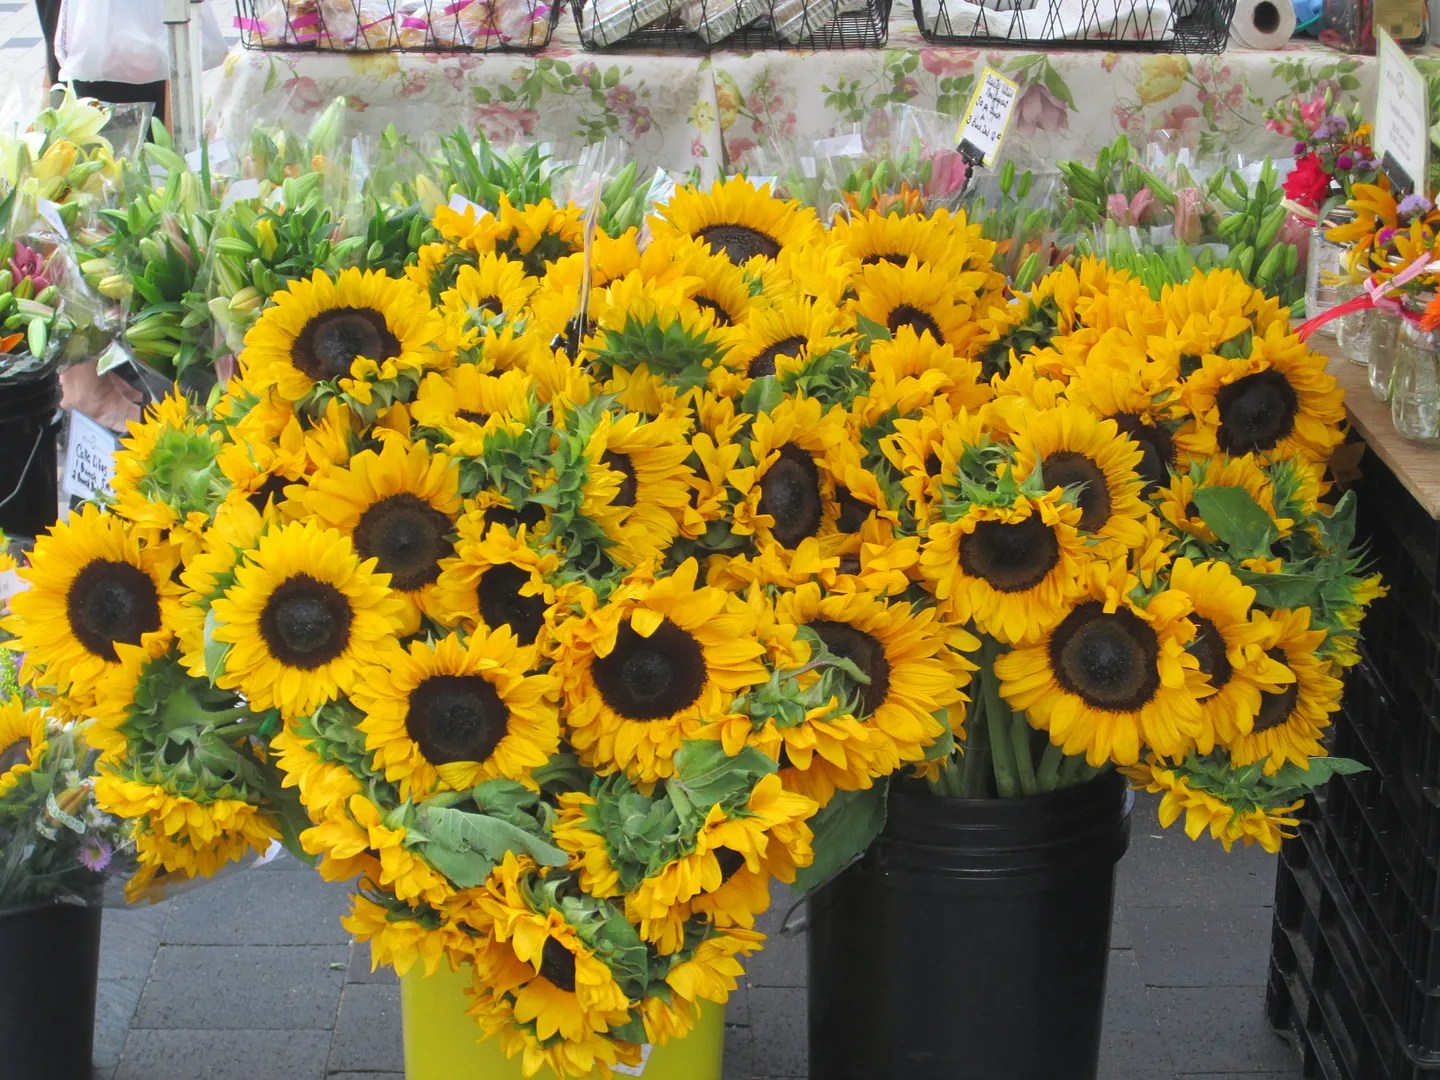 two buckets full of sunflowers at farmers market